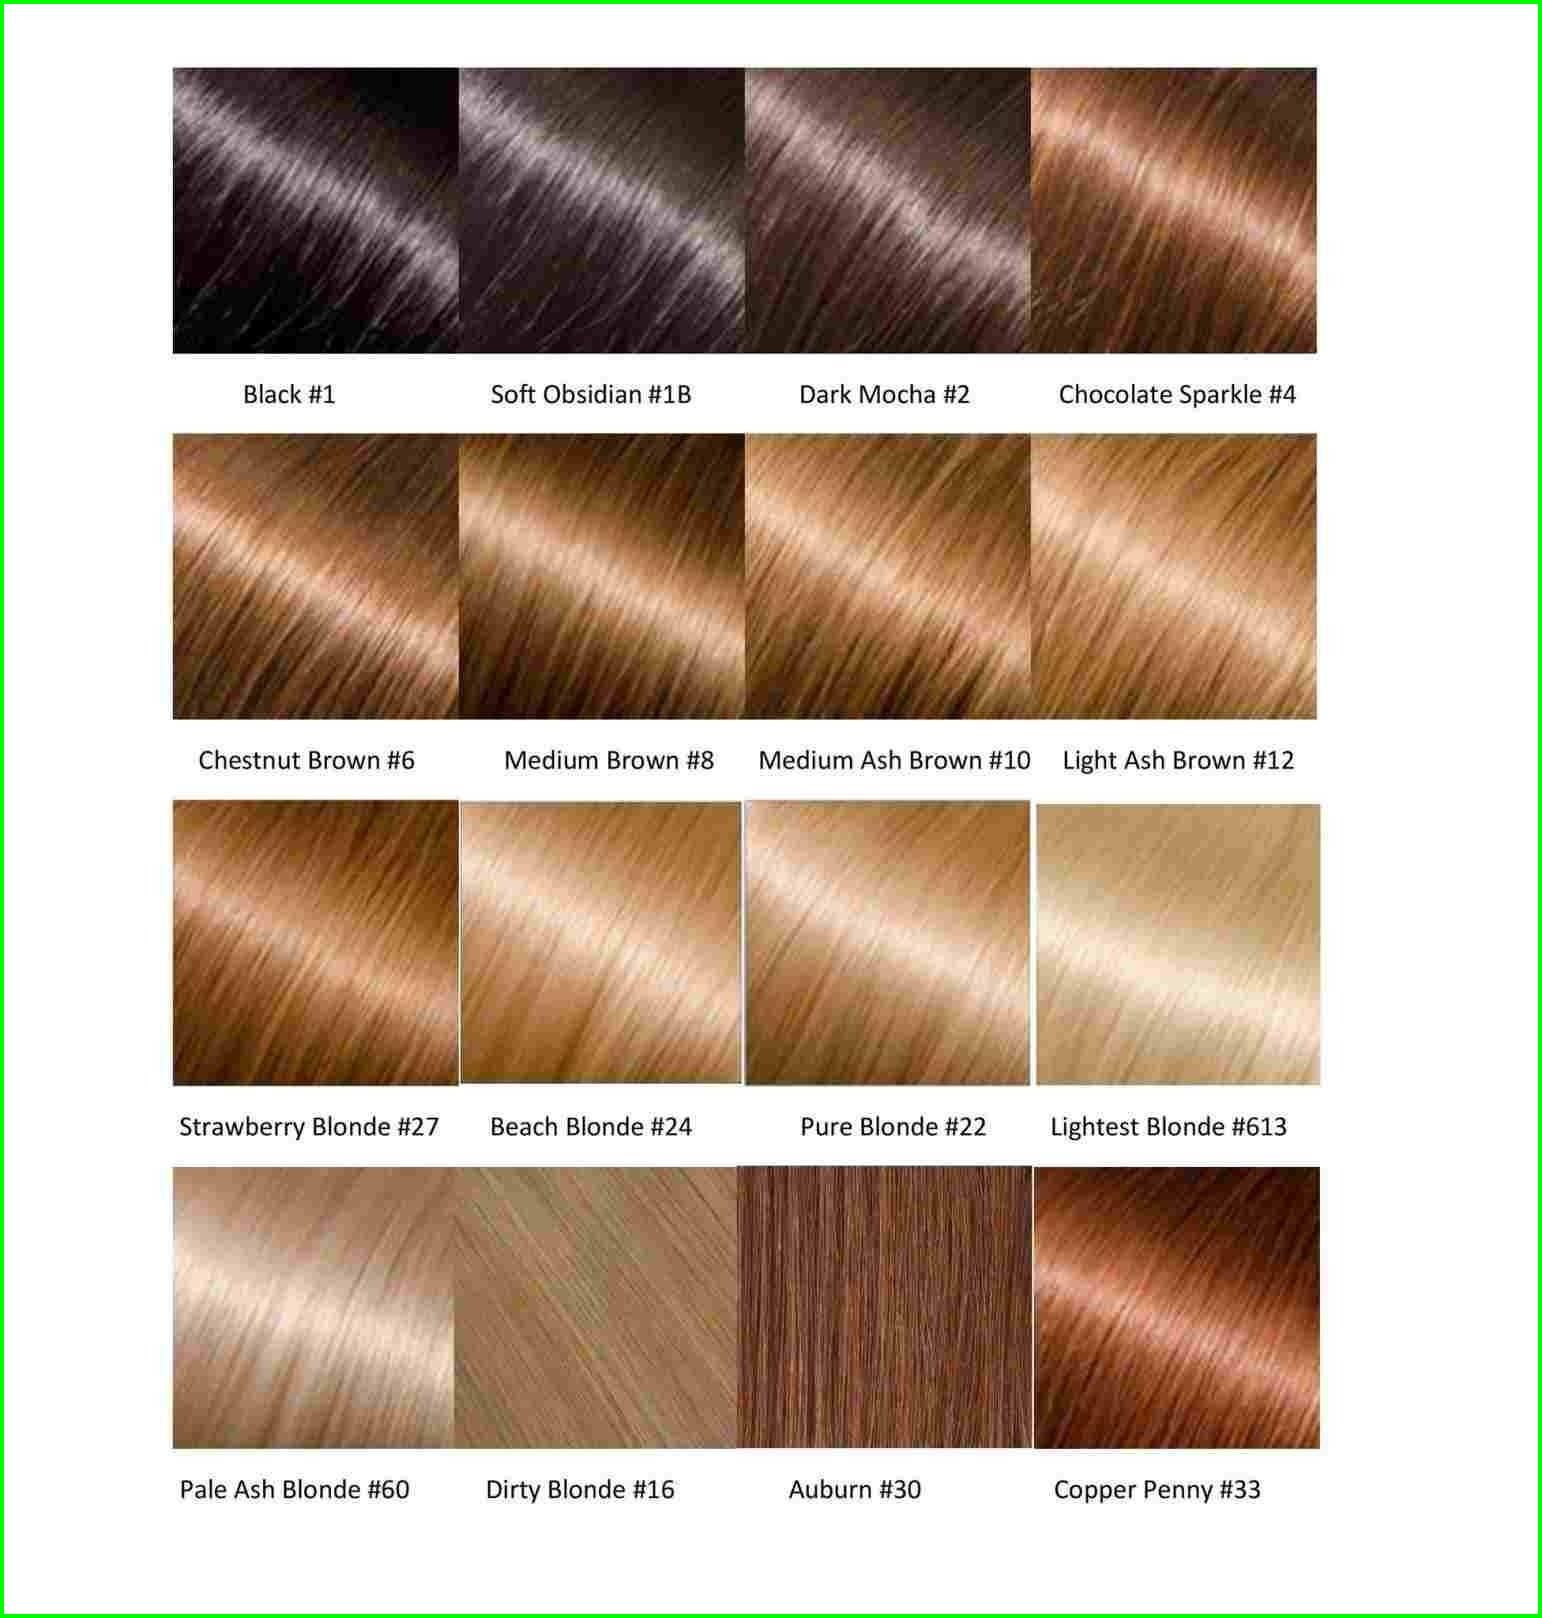 Olia Hair Color Chart 1246 Hairstyles Chestnut Brown Hair Color Chart Interesting Hair Dye Hair Color Chart Olia Hair Color Brown Hair Color Chart